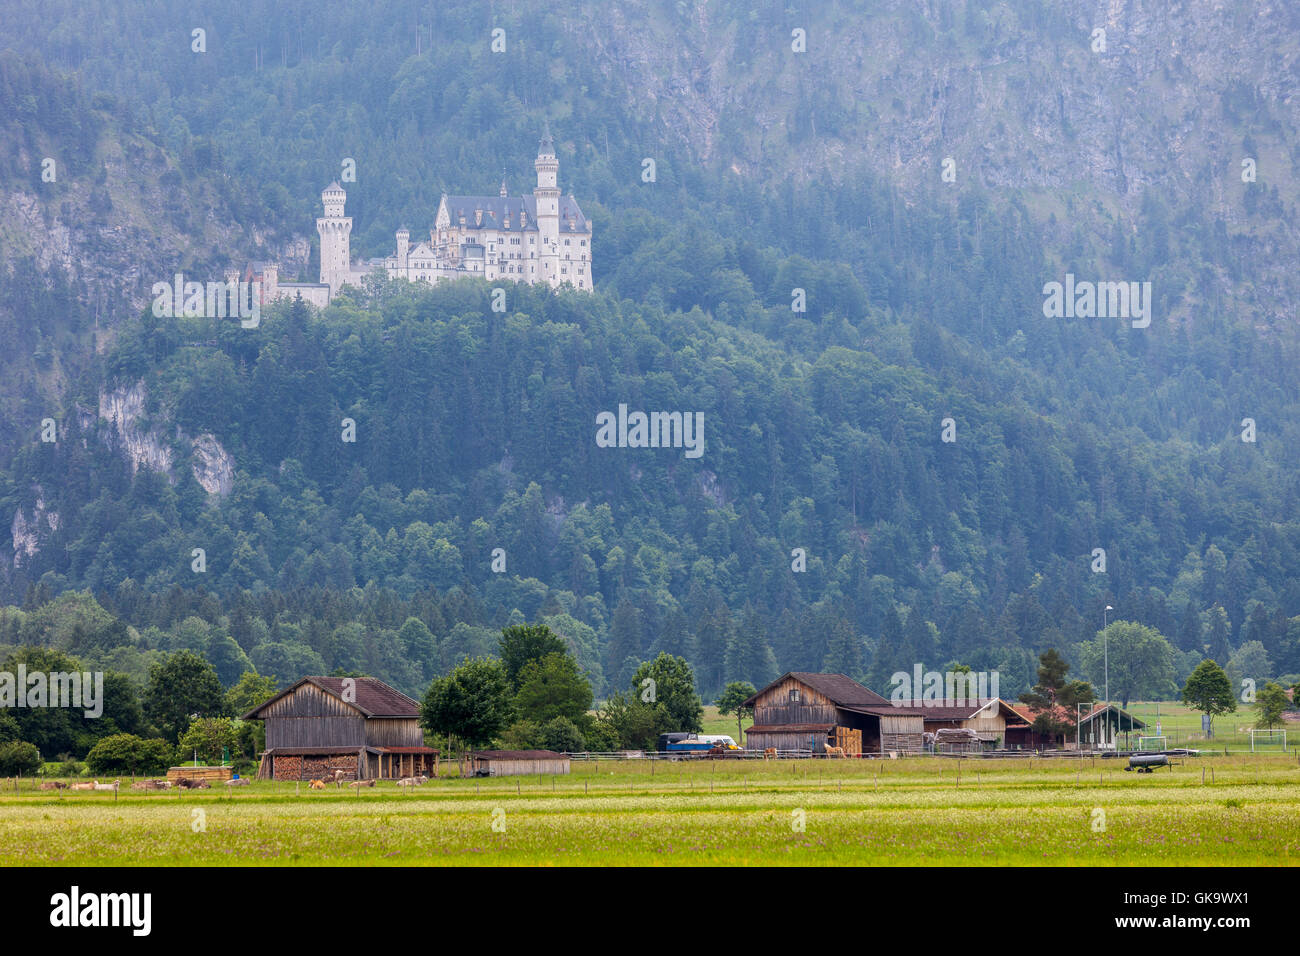 The world-famous Neuschwanstein Castle, the 19th century Romanesque Revival palace built by King Ludwig II of beautiful - Stock Image